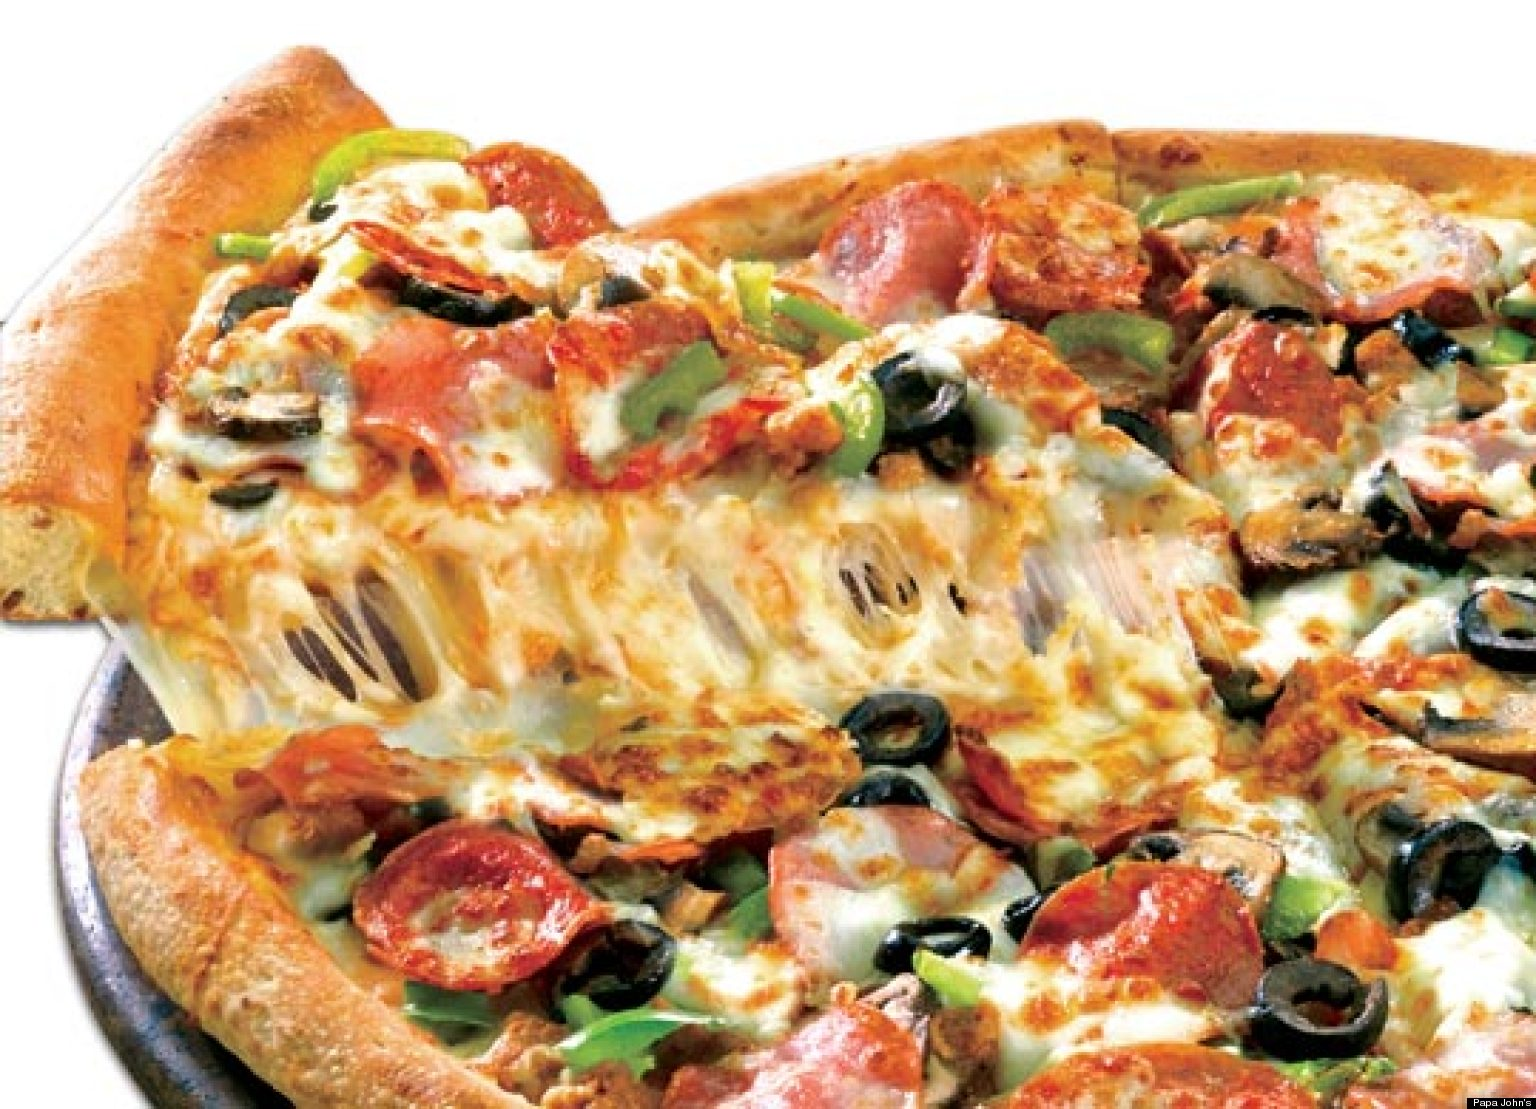 Papa John 39 S Pizza Delivery Man Bests Stun Gun Attacker Refuses To Give Up Pies Huffpost